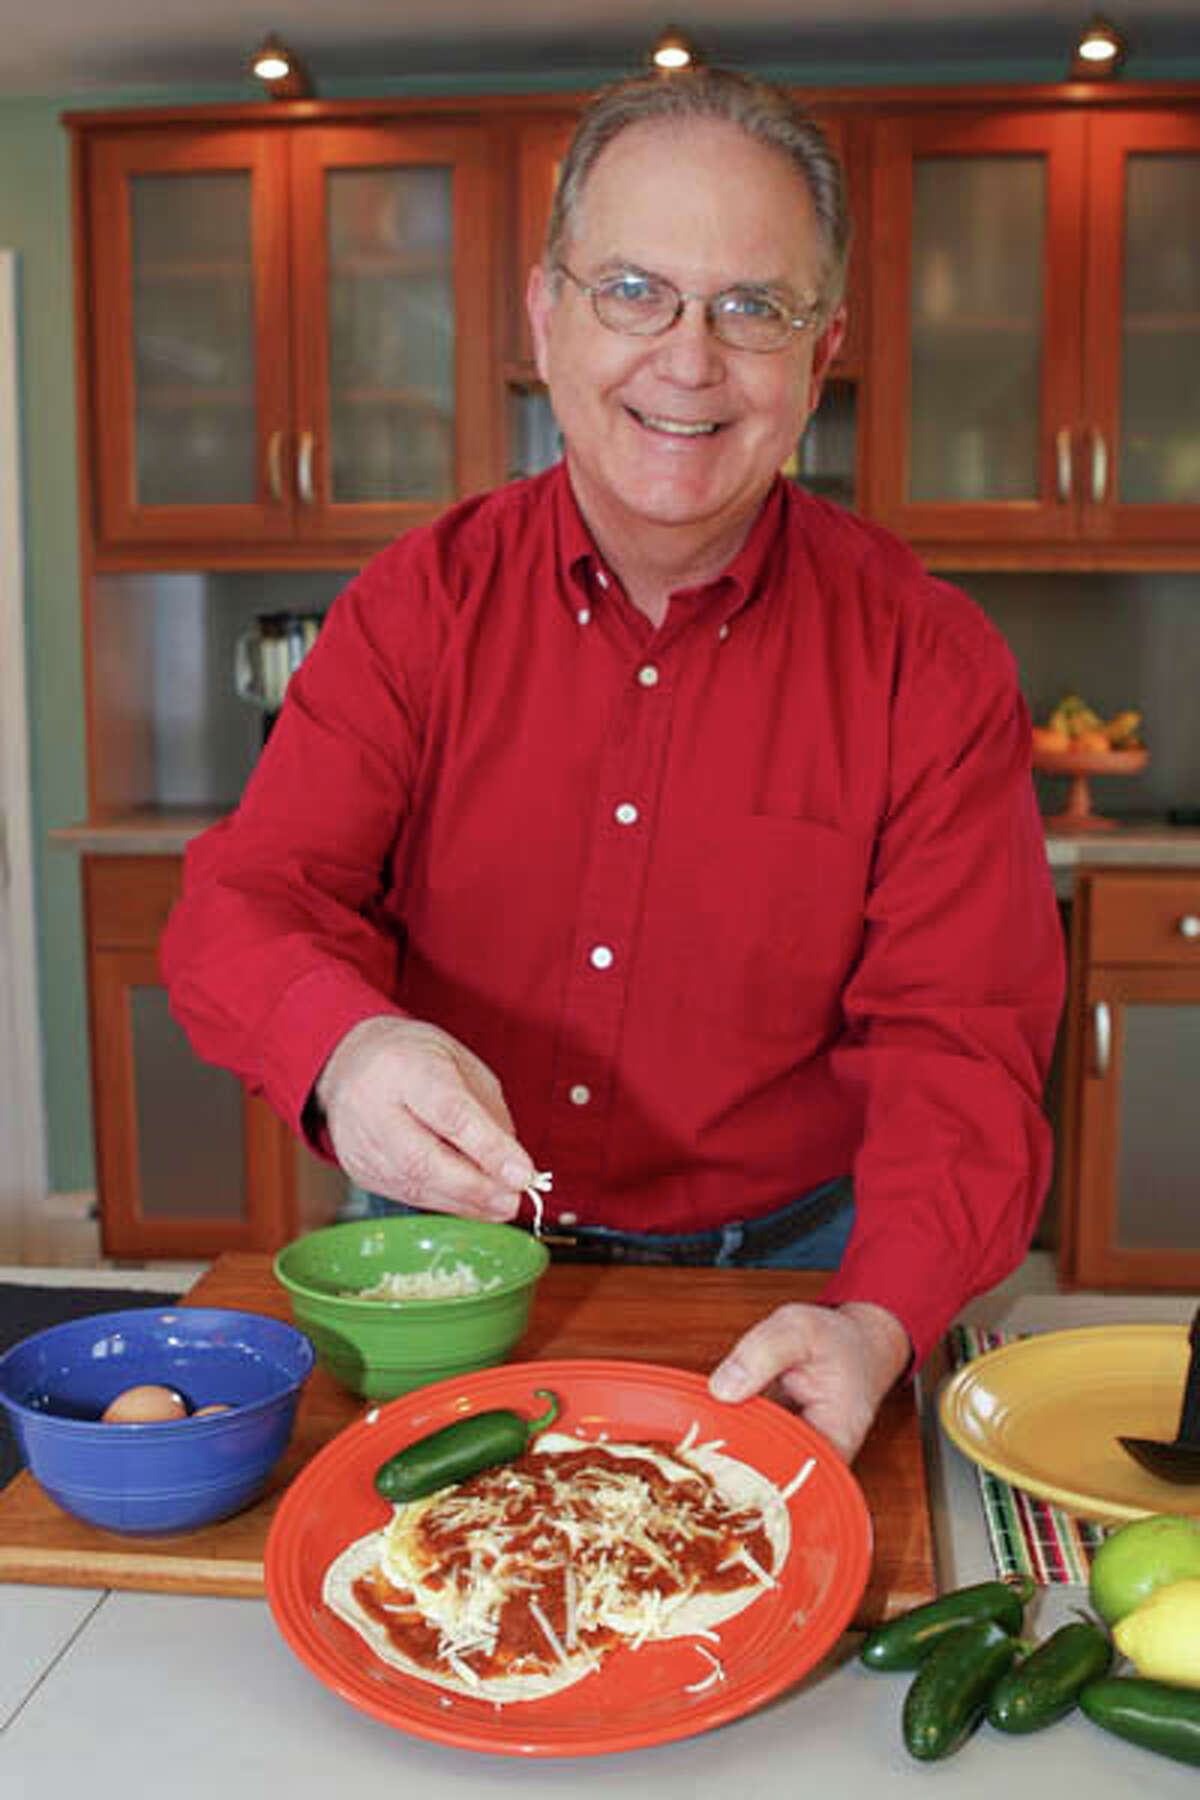 Larry Sombke makes gluten-free, all-natural Southwestern Sauces. Read the story here